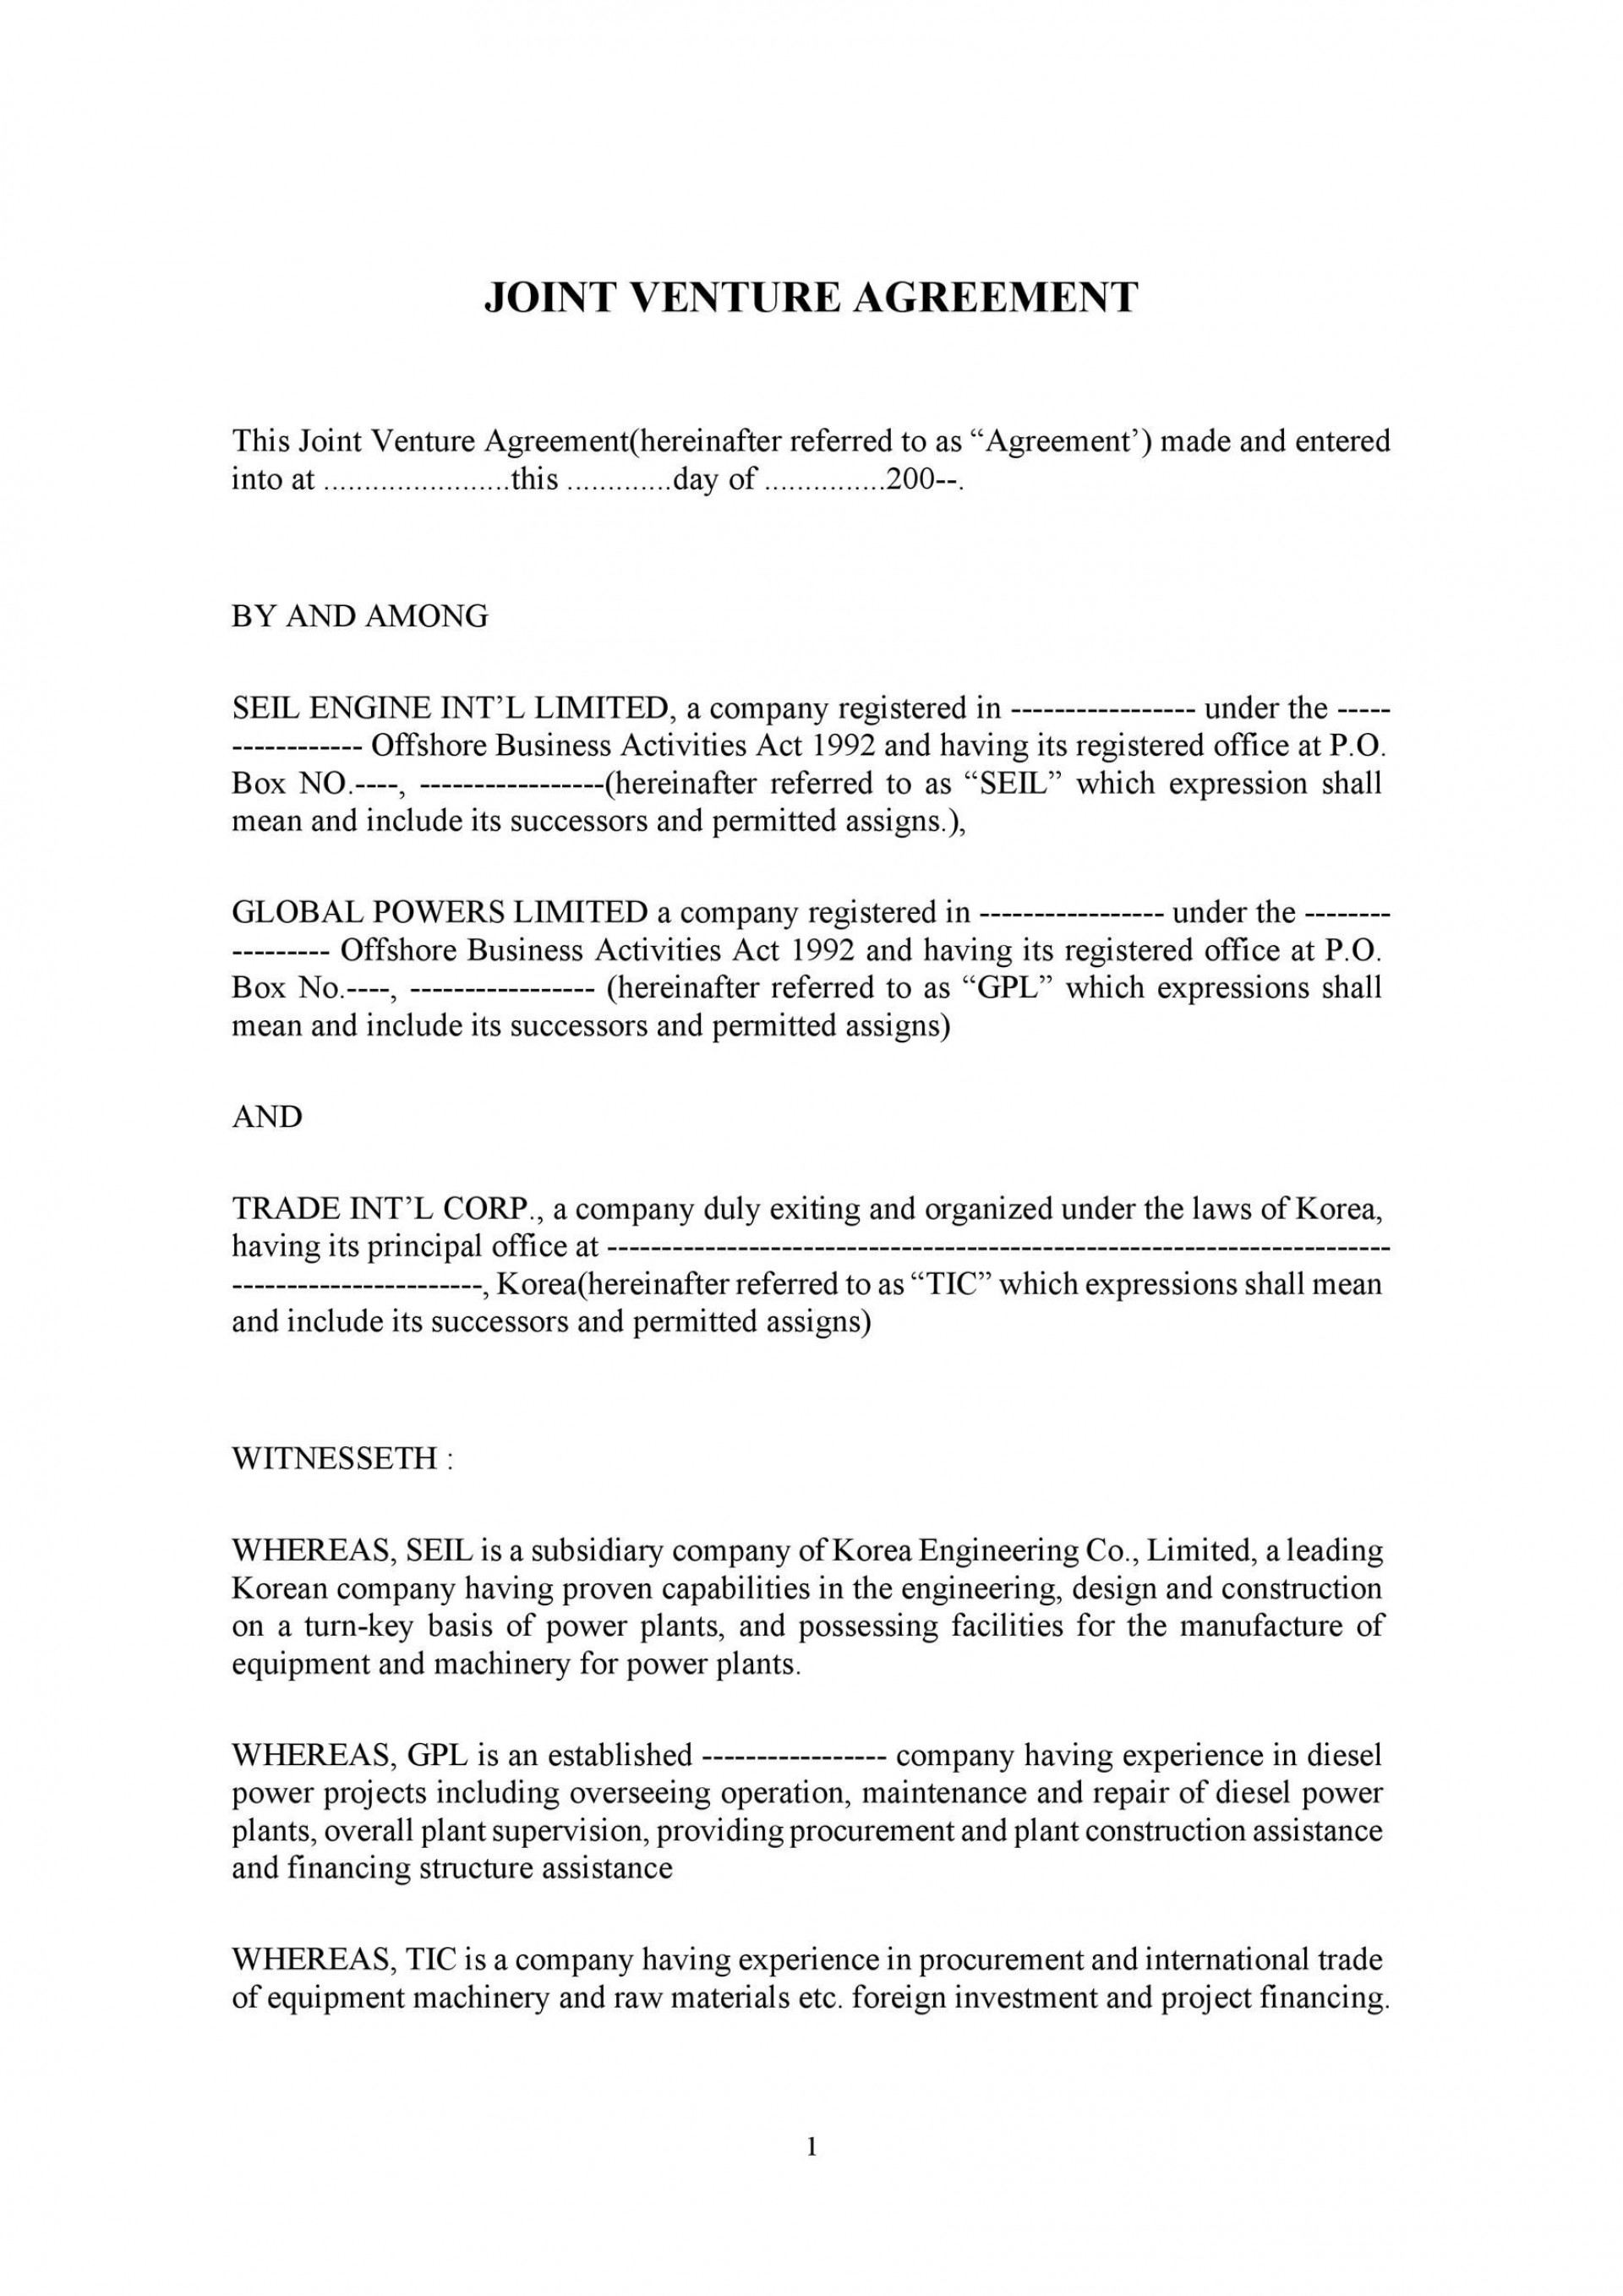 006 Marvelou Joint Venture Agreement Template Doc Example  Uk1920